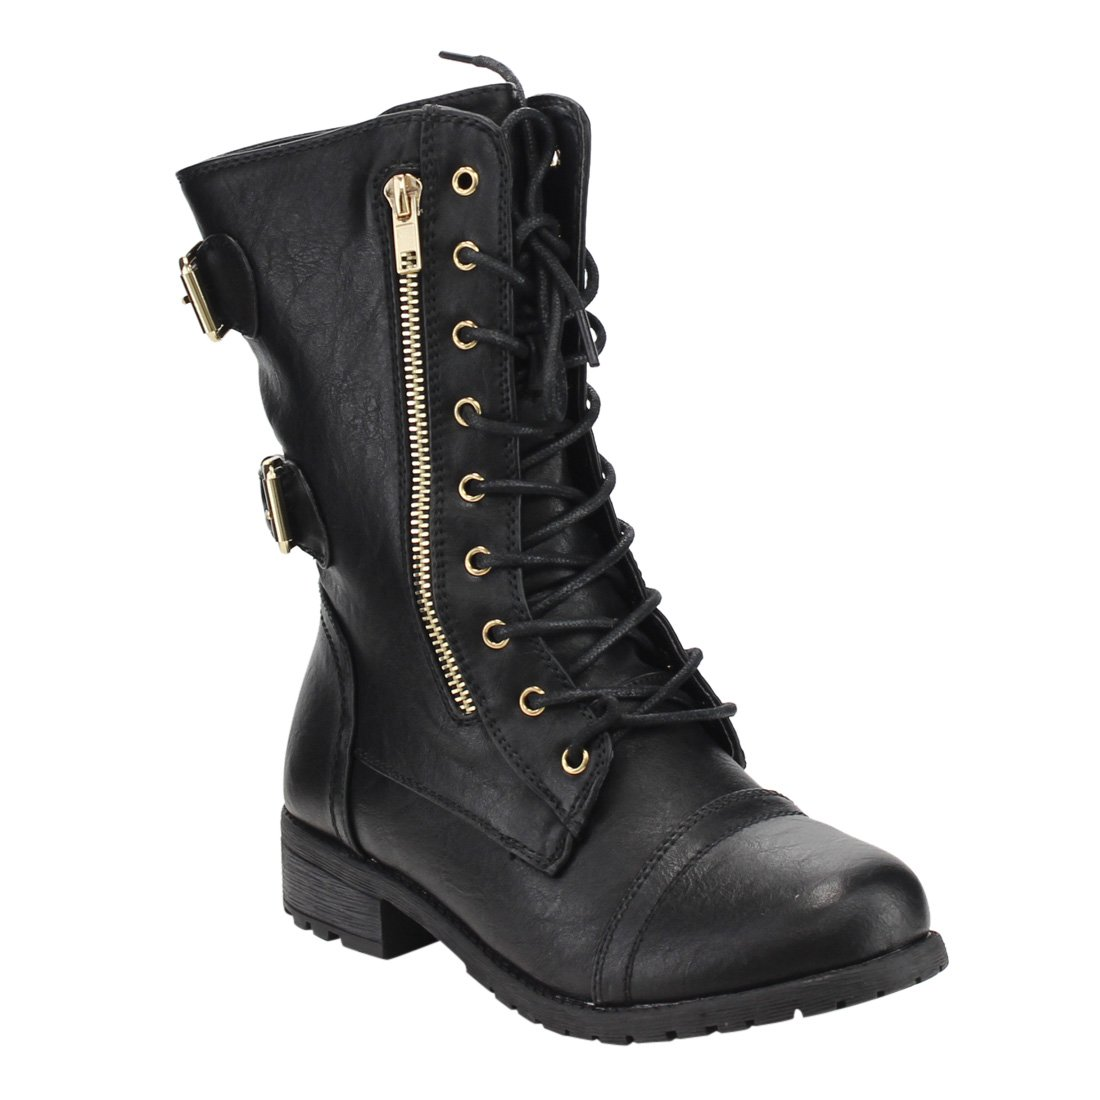 Forever Women's Mango-71 Faux Leather Military Style Ankle Boots Thick Sole Buckles,Black,10